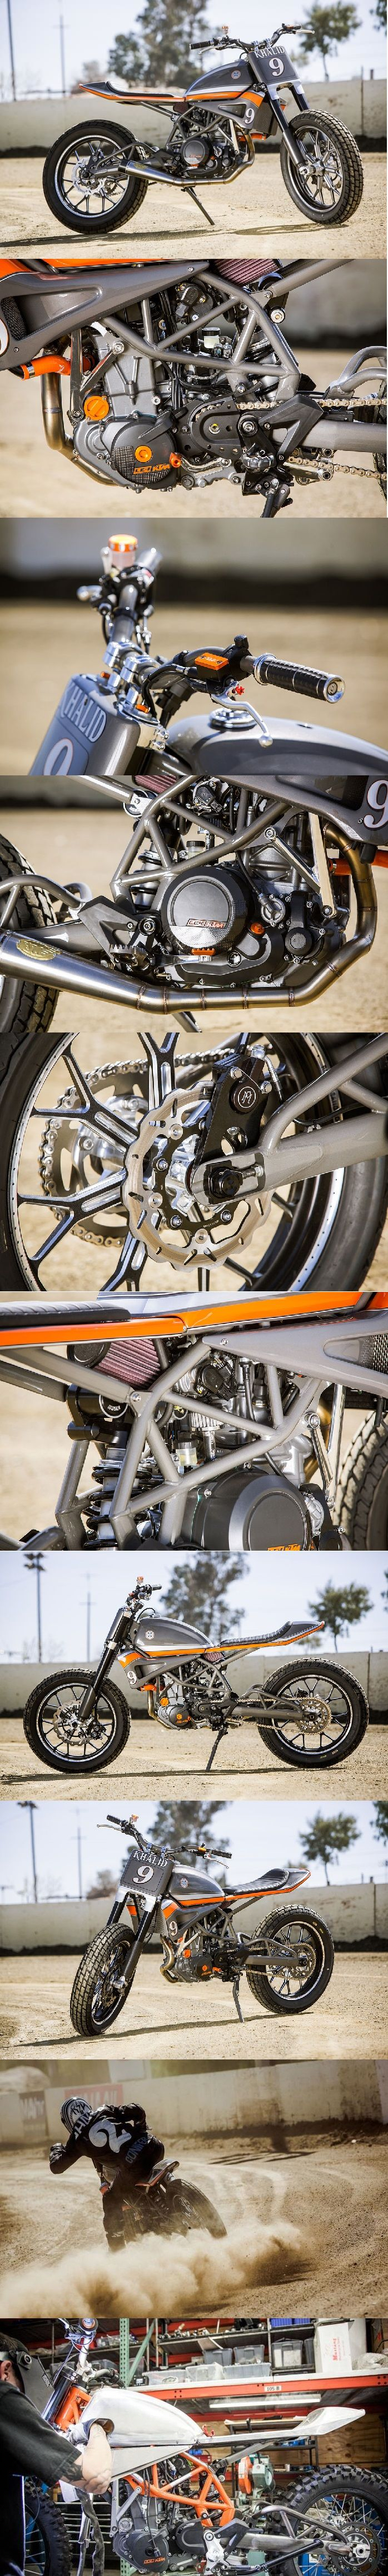 RSD KTM 690 Tracker (Click for more info)  #RSD #rolandsands #flattrack #knfilters